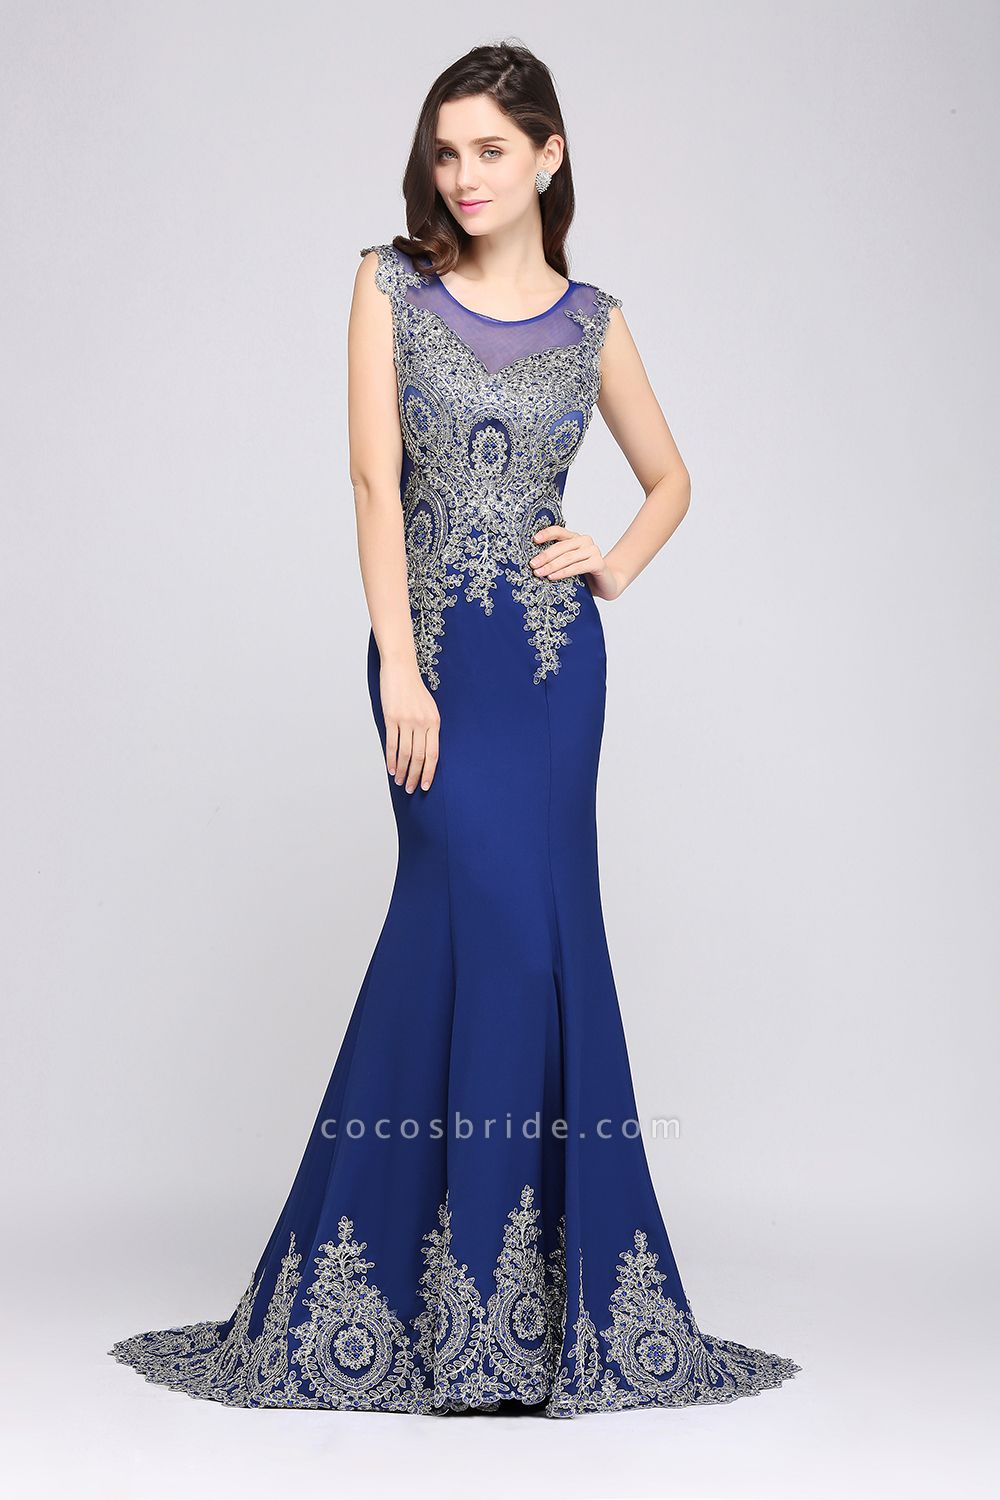 ANNIE | Mermaid Scoop Sweep Train Royal Blue Prom Dresses with Appliques